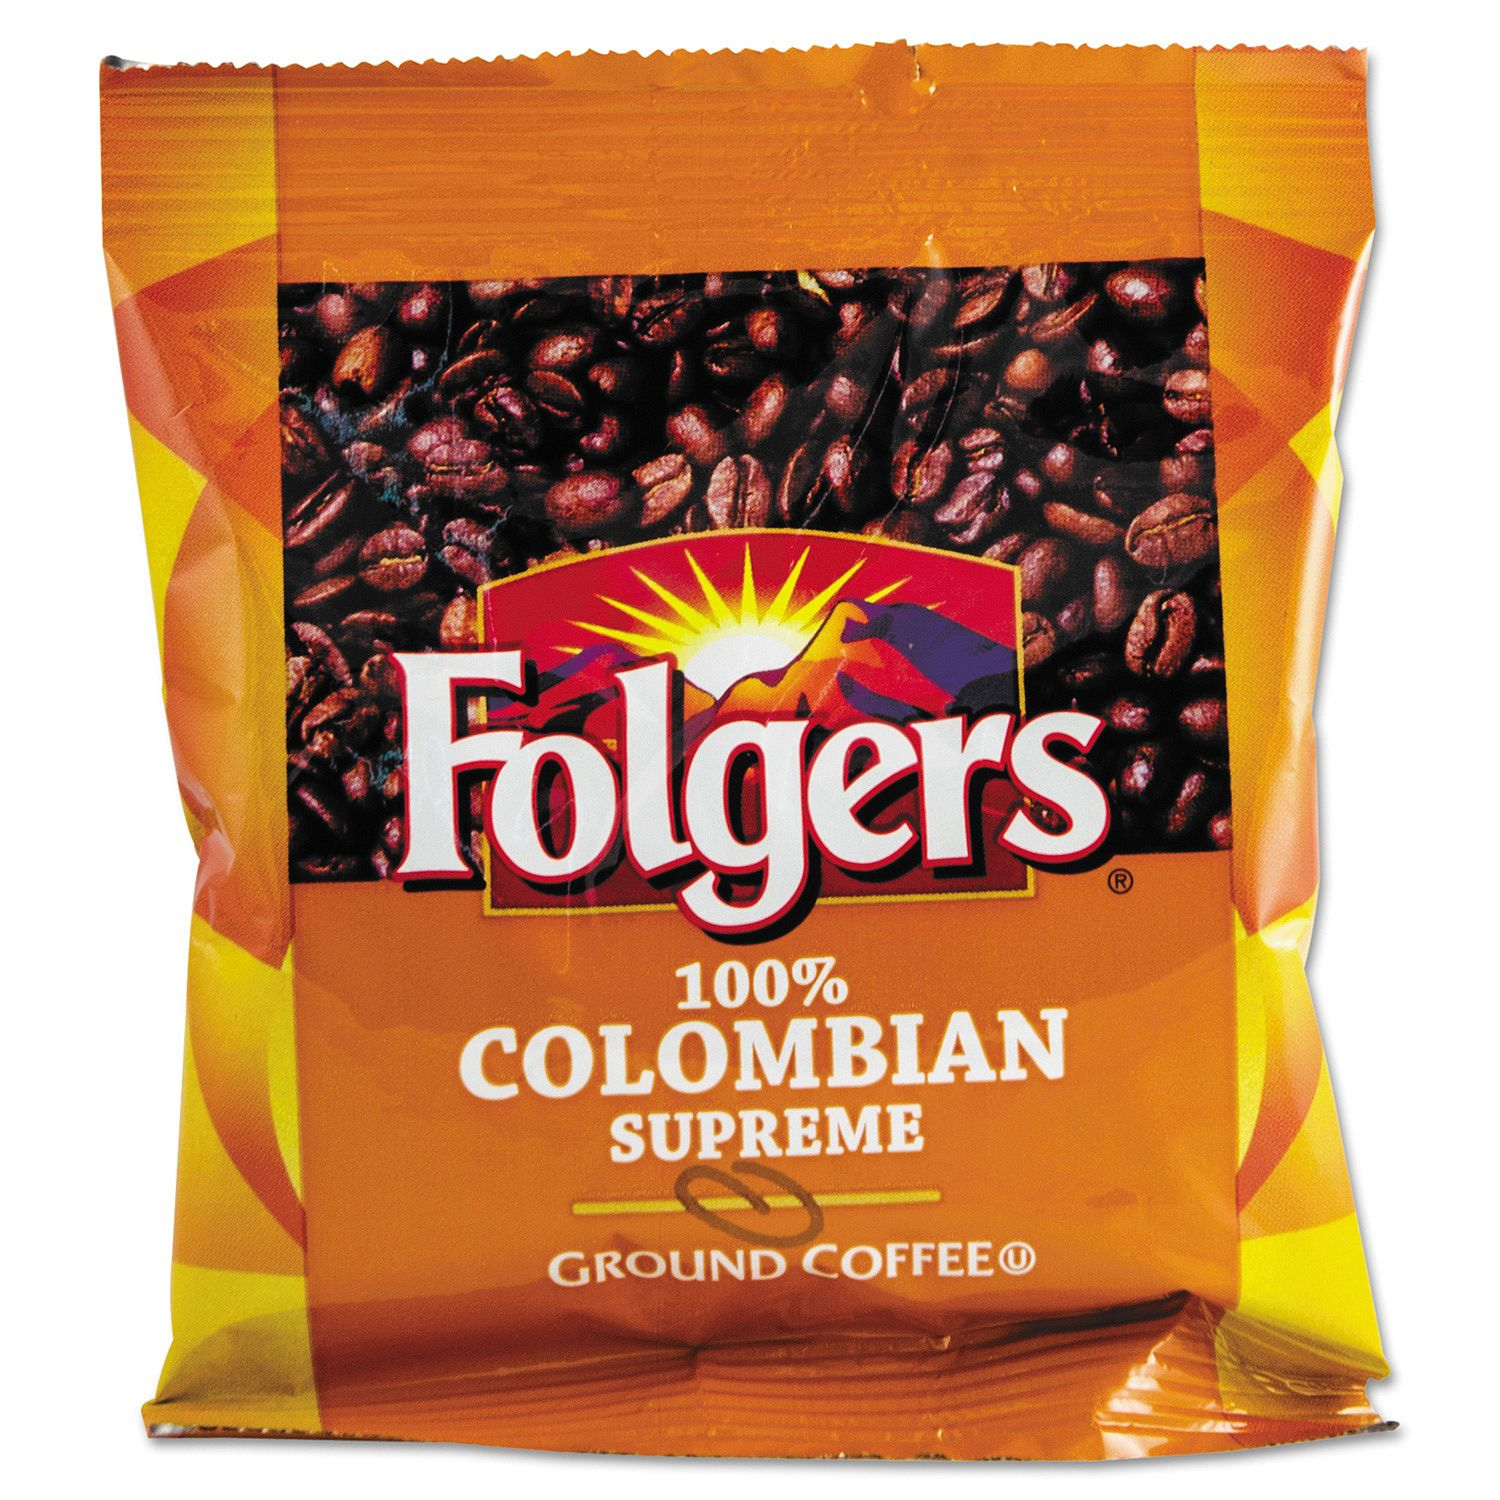 Folgers Colombian Ground Coffee (1.75 oz. pack, 42 ct.)